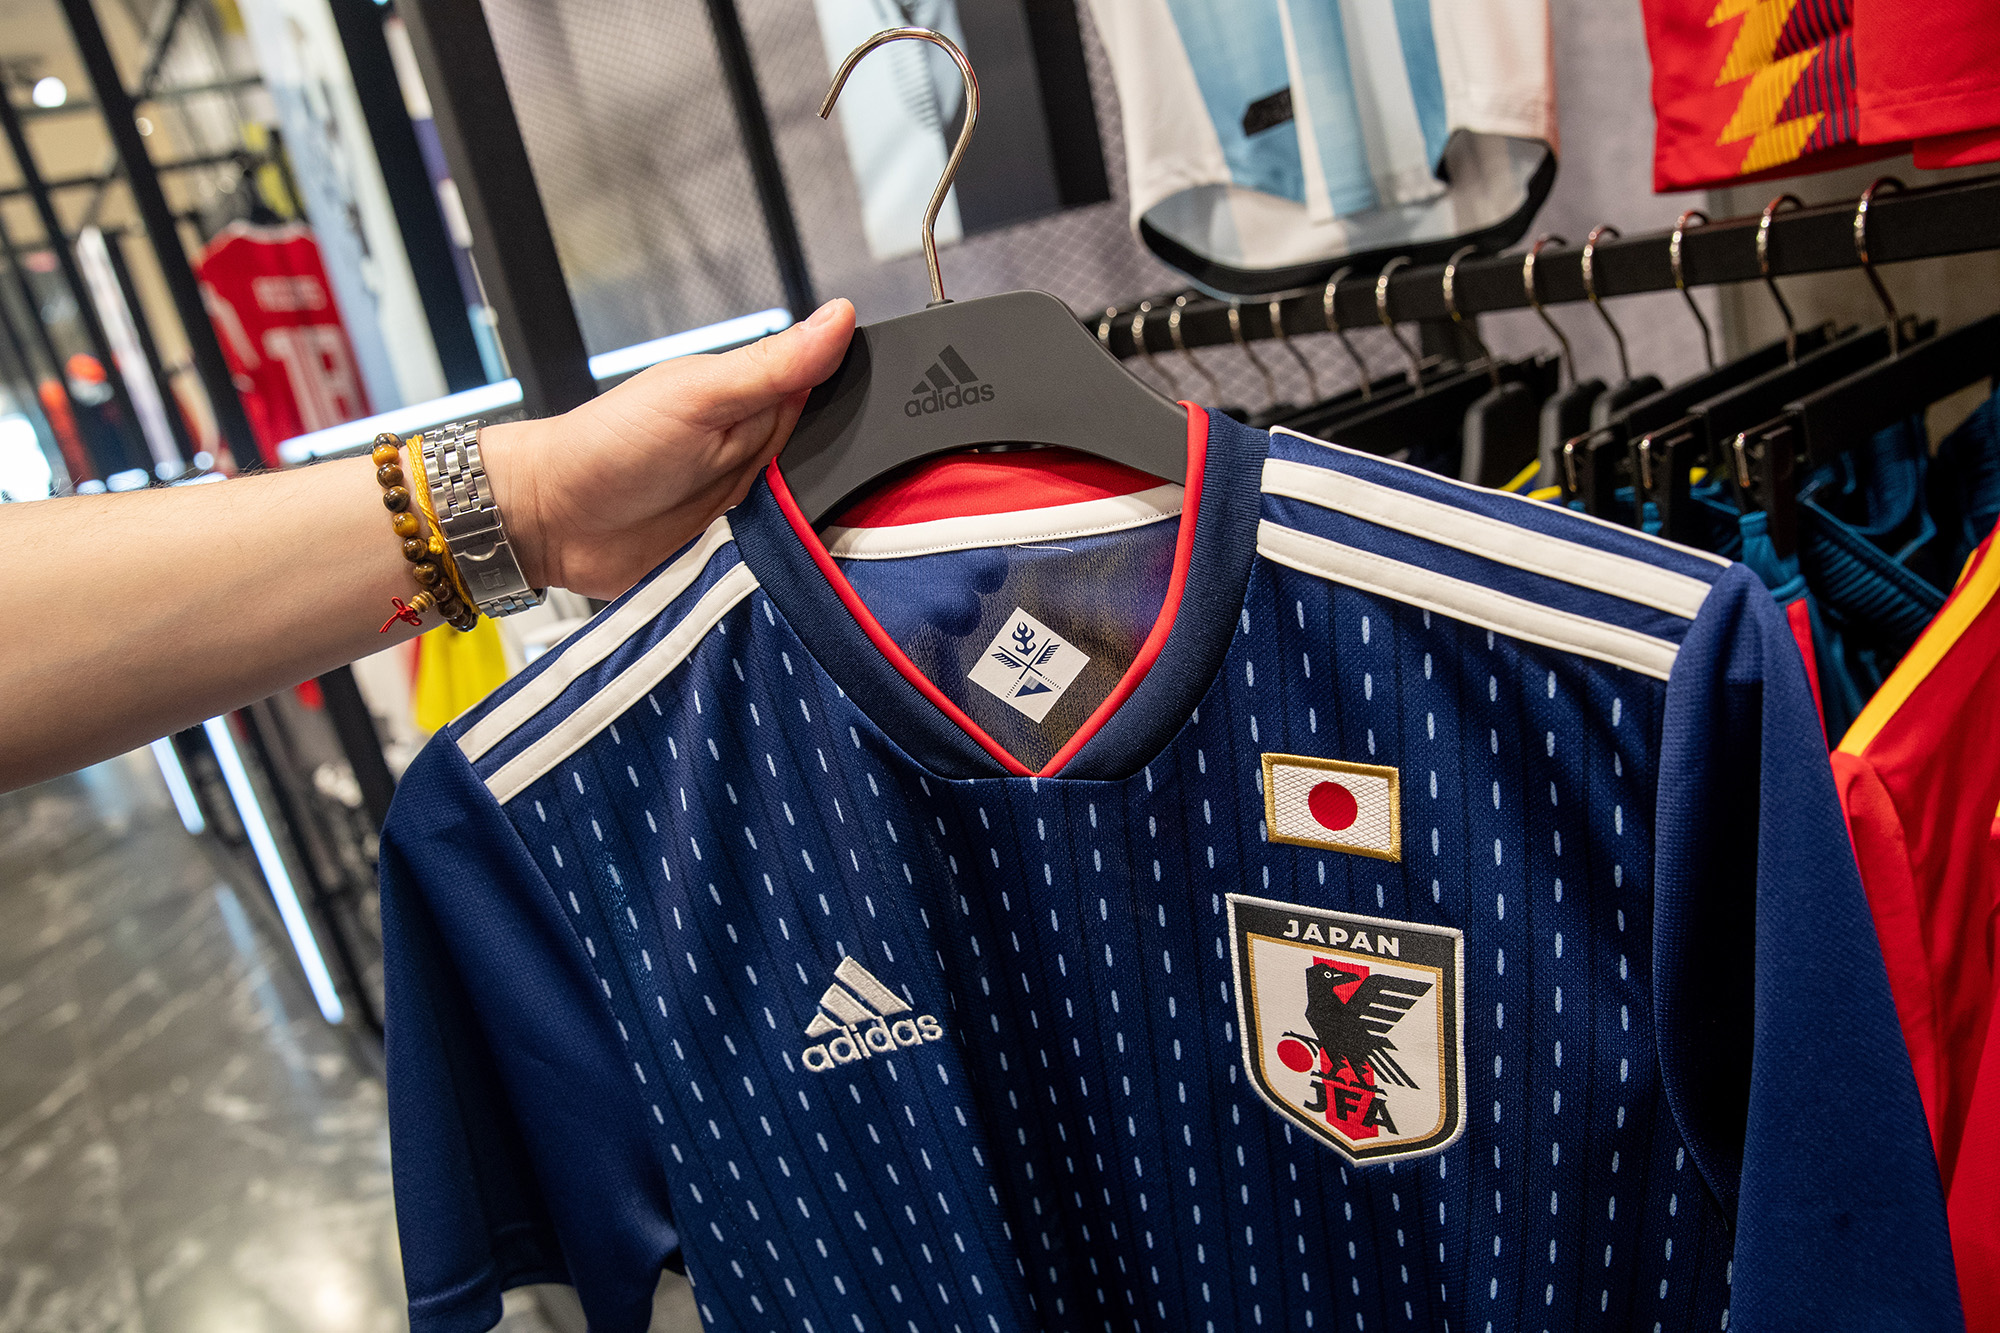 955de1abb19 Adidas Expects Record World Cup Jersey Sales - Bloomberg